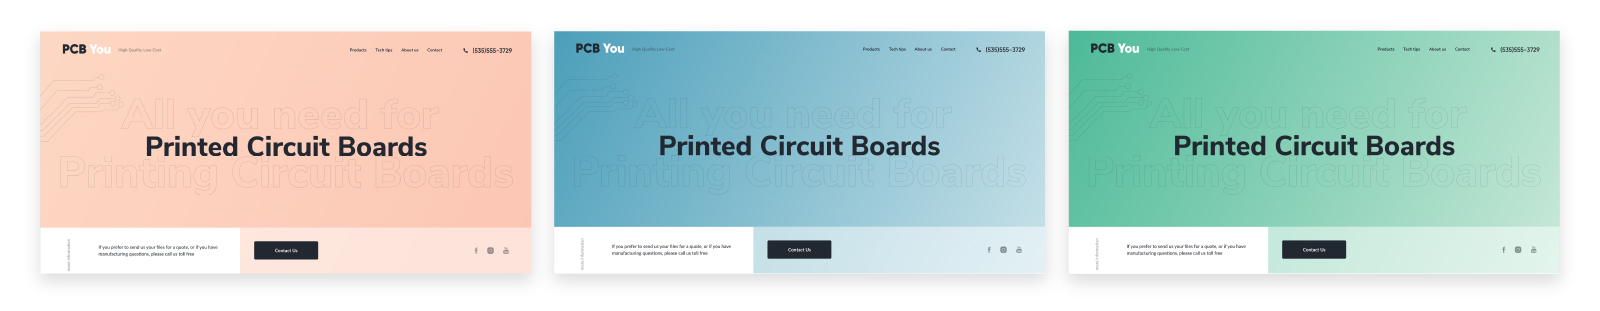 PCB You - Home page design ideas in color options